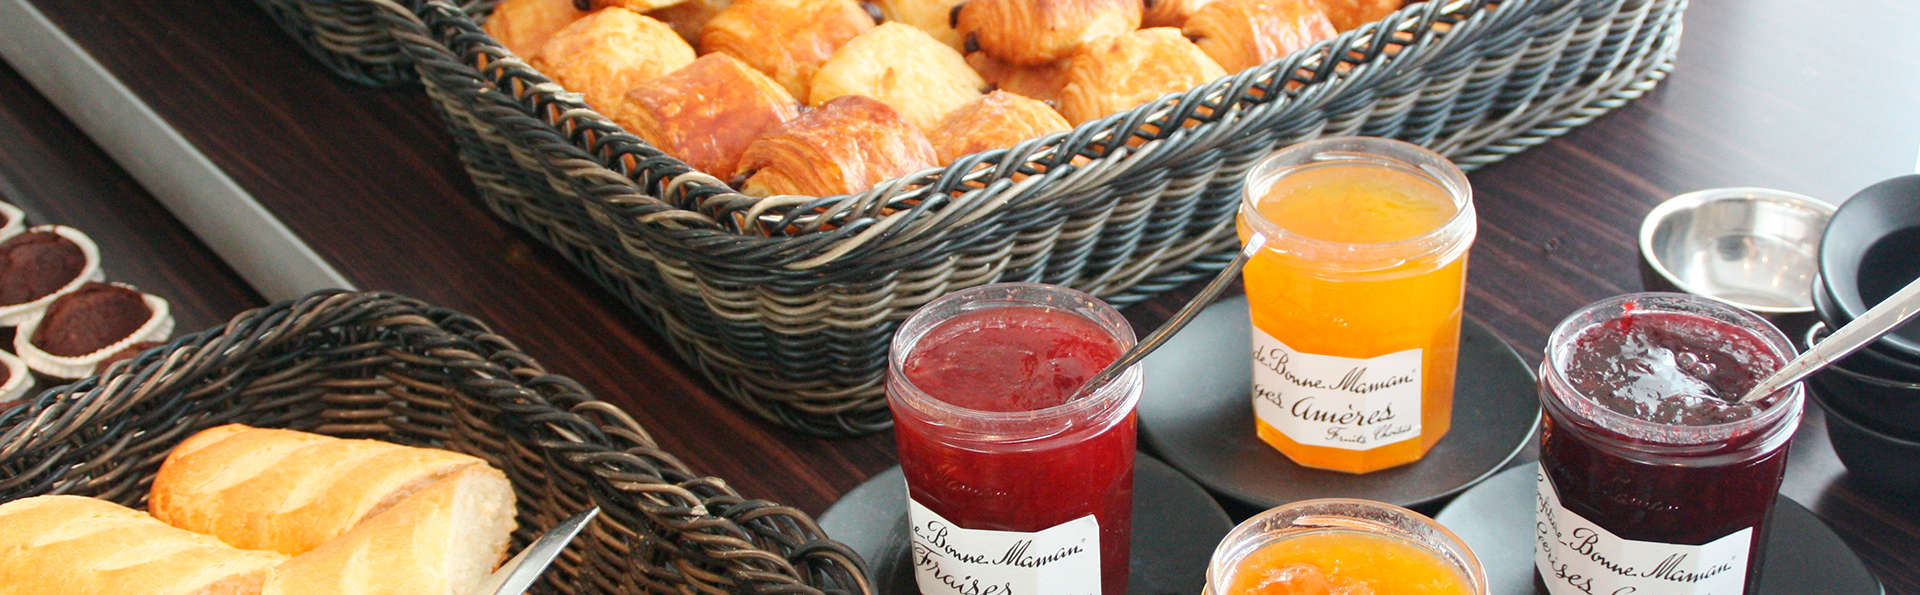 Novotel Paris Vaugirard Montparnasse - EDIT_breakfast2.jpg